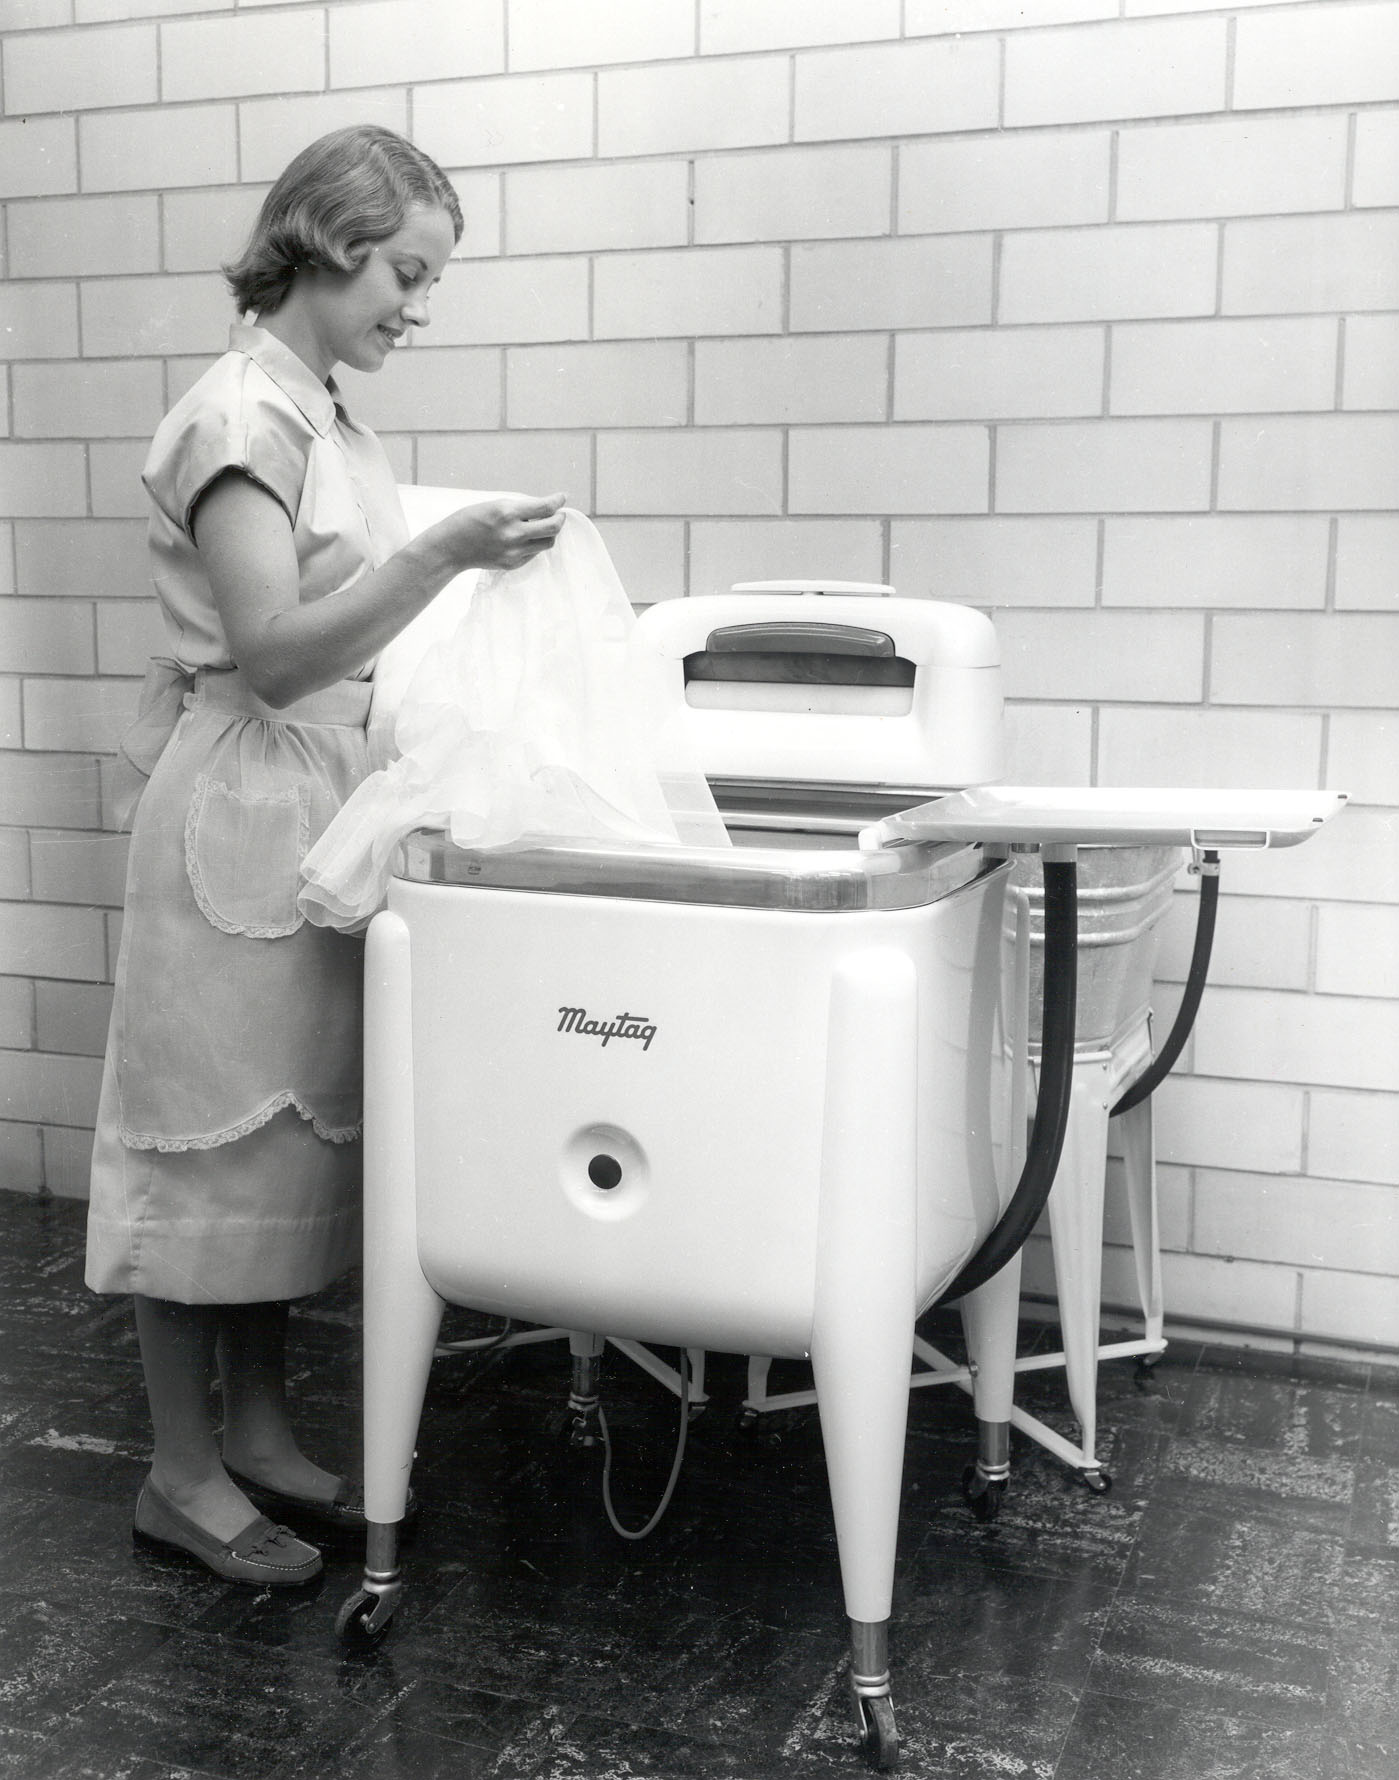 Maytag Commercial Laundry equipment history